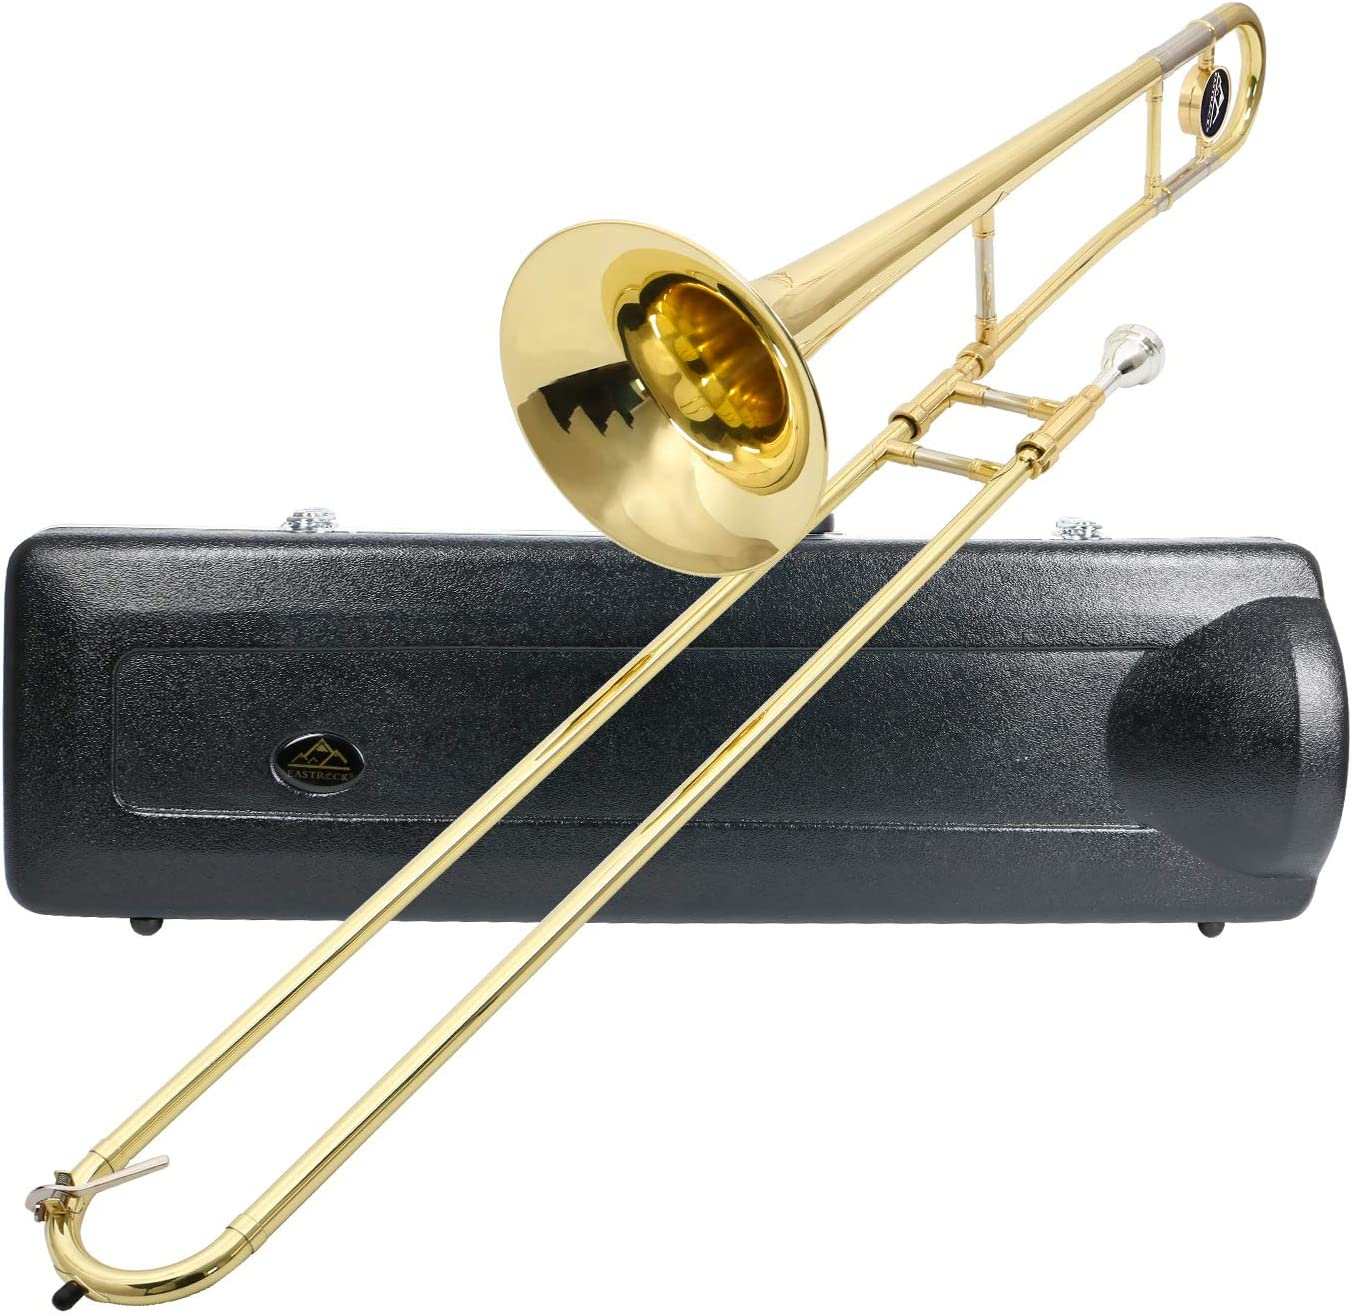 Eastrock Trombone Bb Tenor Slide Gold Trombone Brass Musical Instrument With Hard Case Mouthpiece And Care Kit For Standard Student Beginner Trombone Musical Instruments